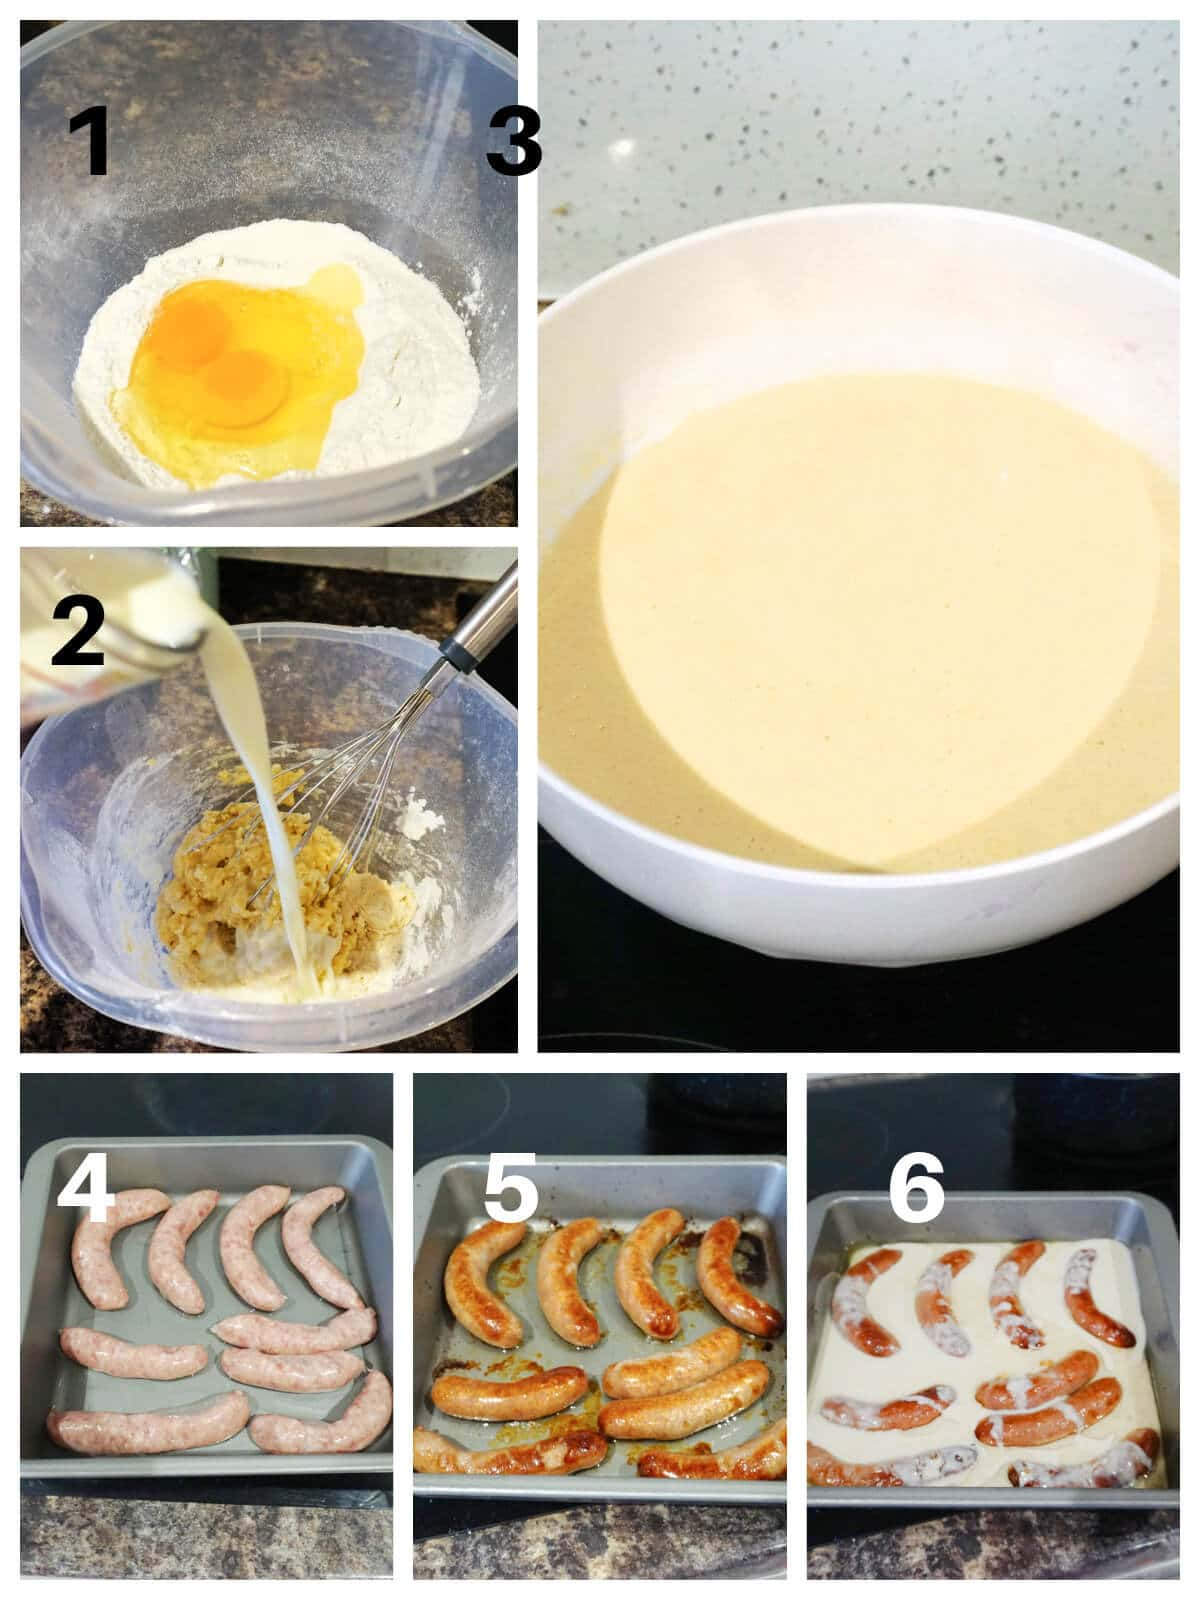 Collage of 6 photos to show how to make toad in the hole